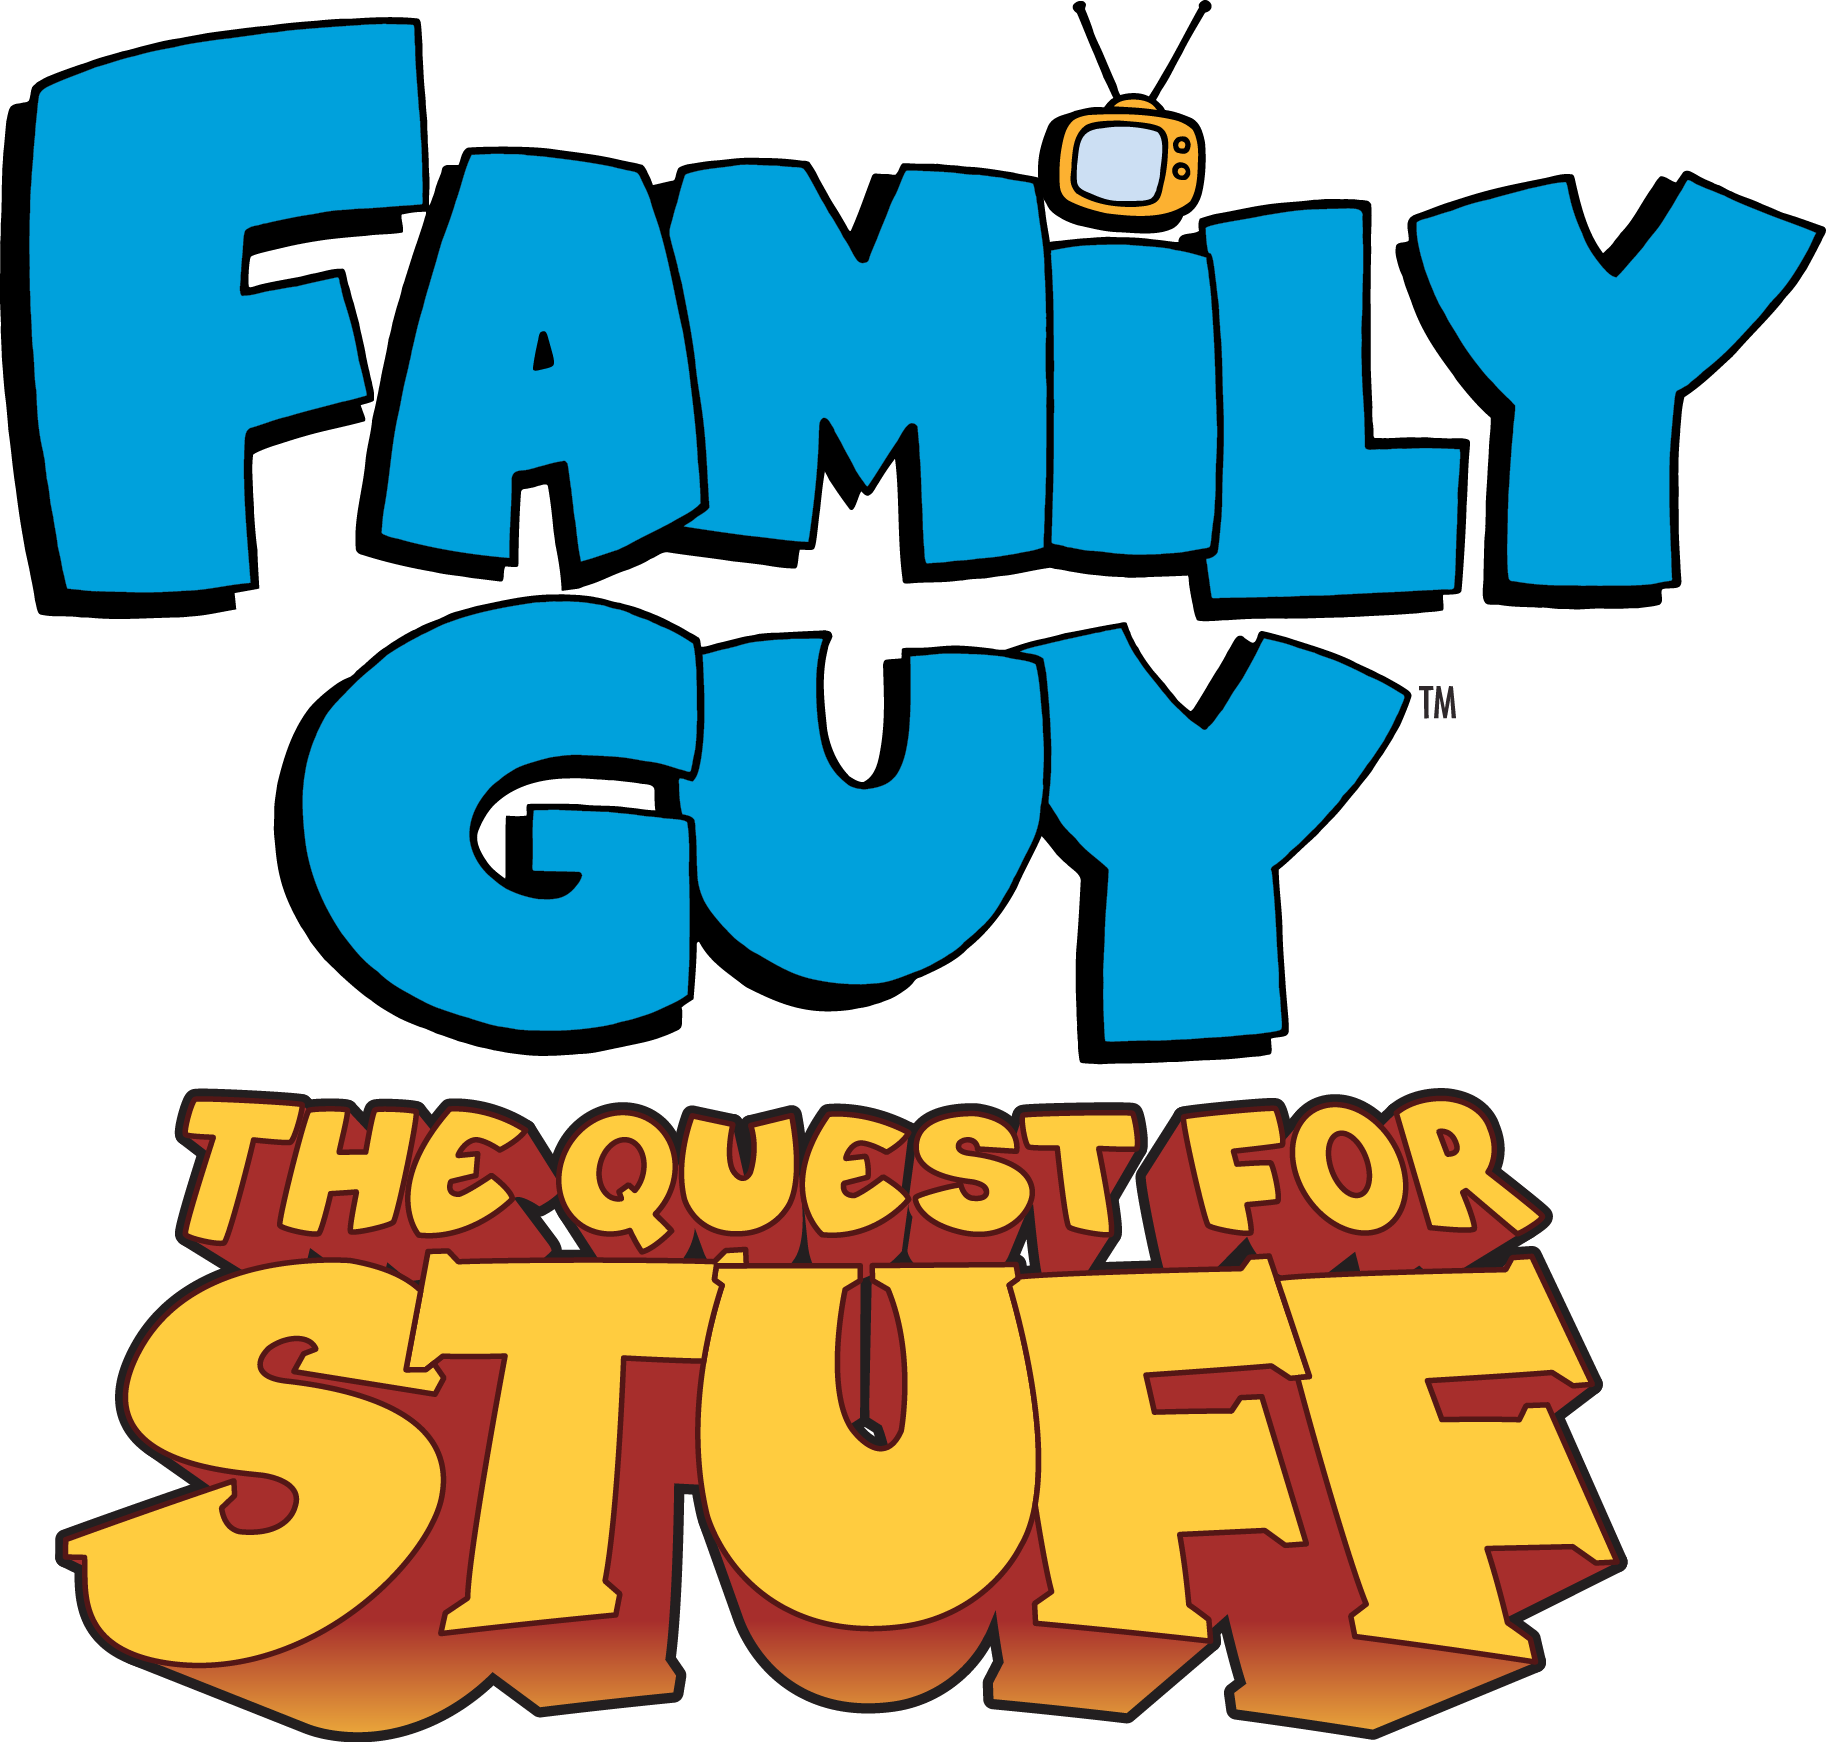 Family Guy Quest For Stuff Game  Family Guy Addicts-4705